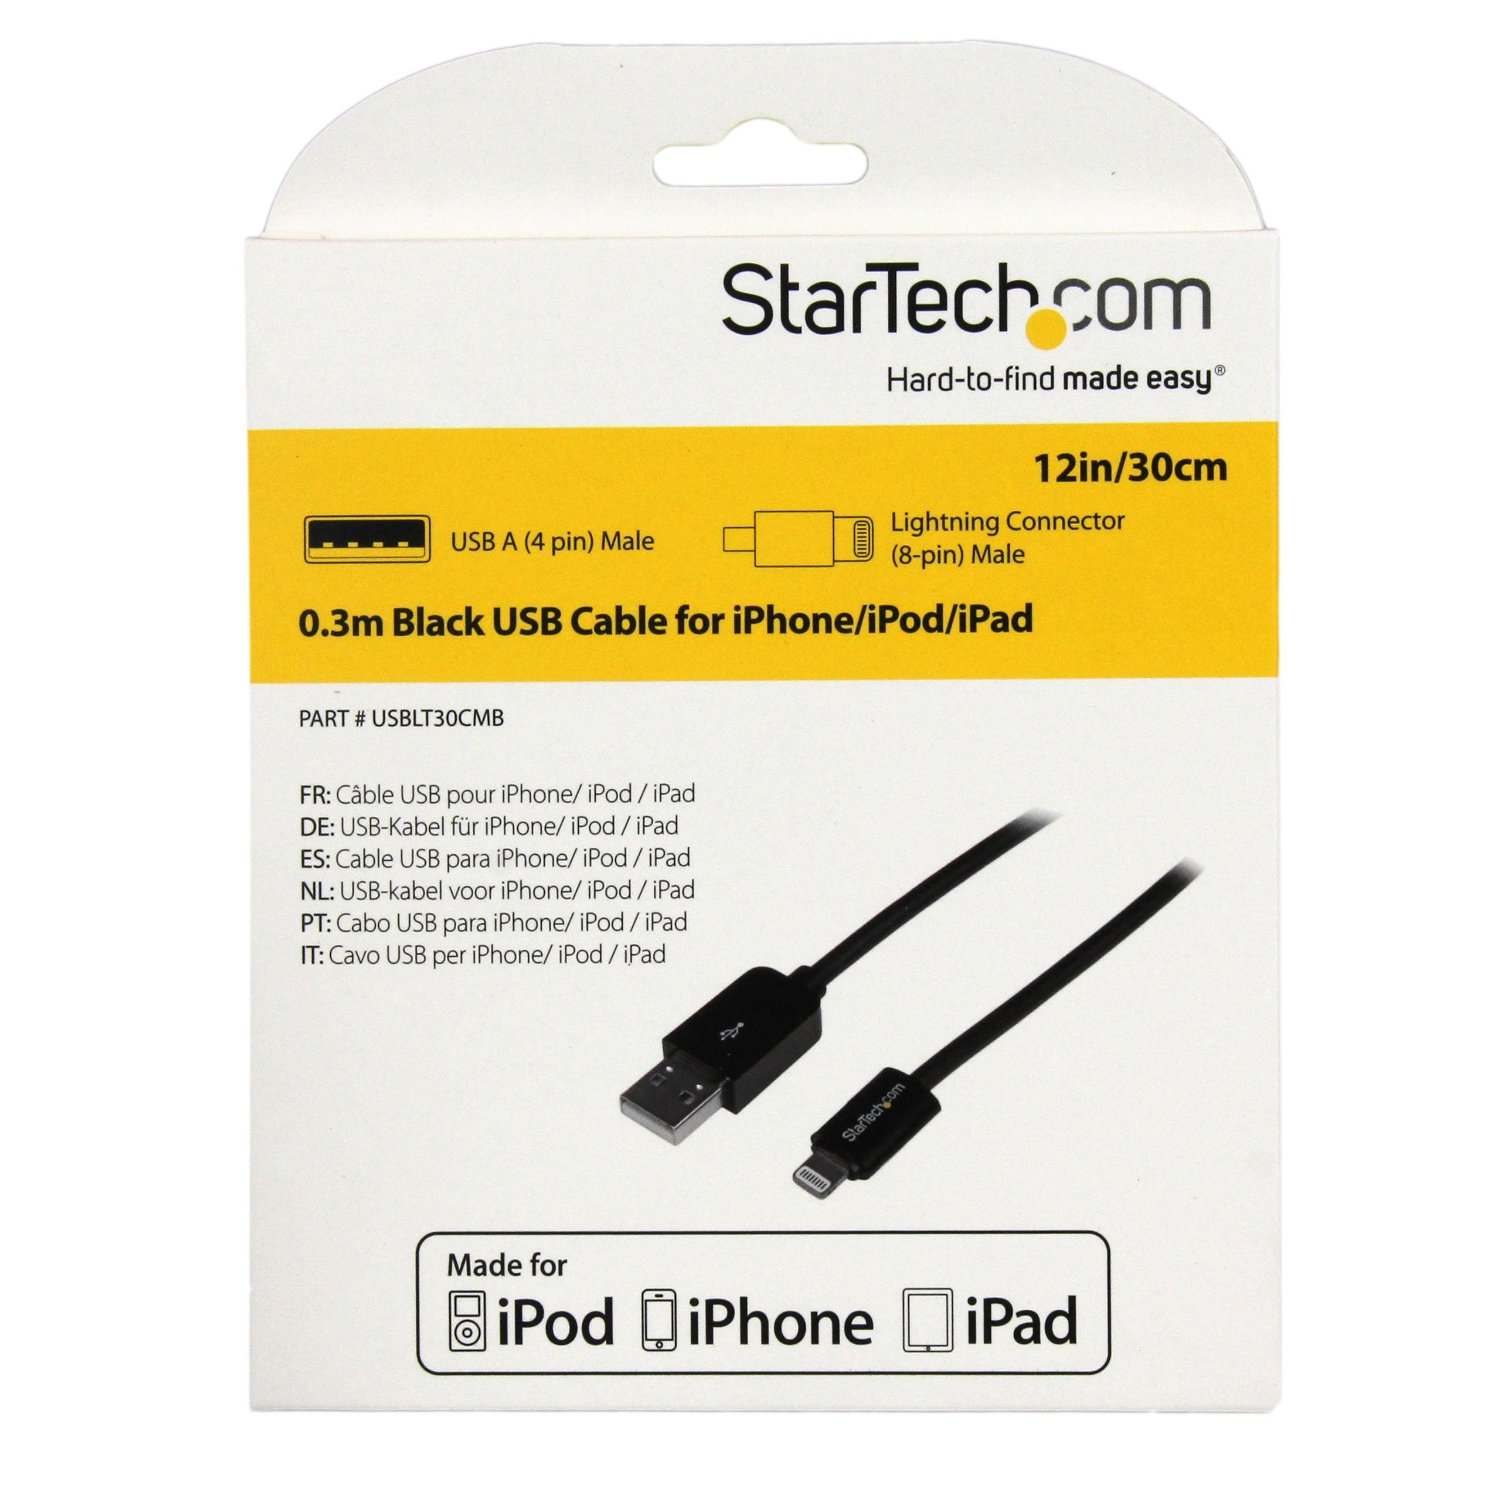 Startechcom 03m 11in Short Black Apple 8 Pin Lightning Connector Kabel Usb Male To 30cm High Quality Cable For Iphone Ipod Ipad By Office Depot Officemax